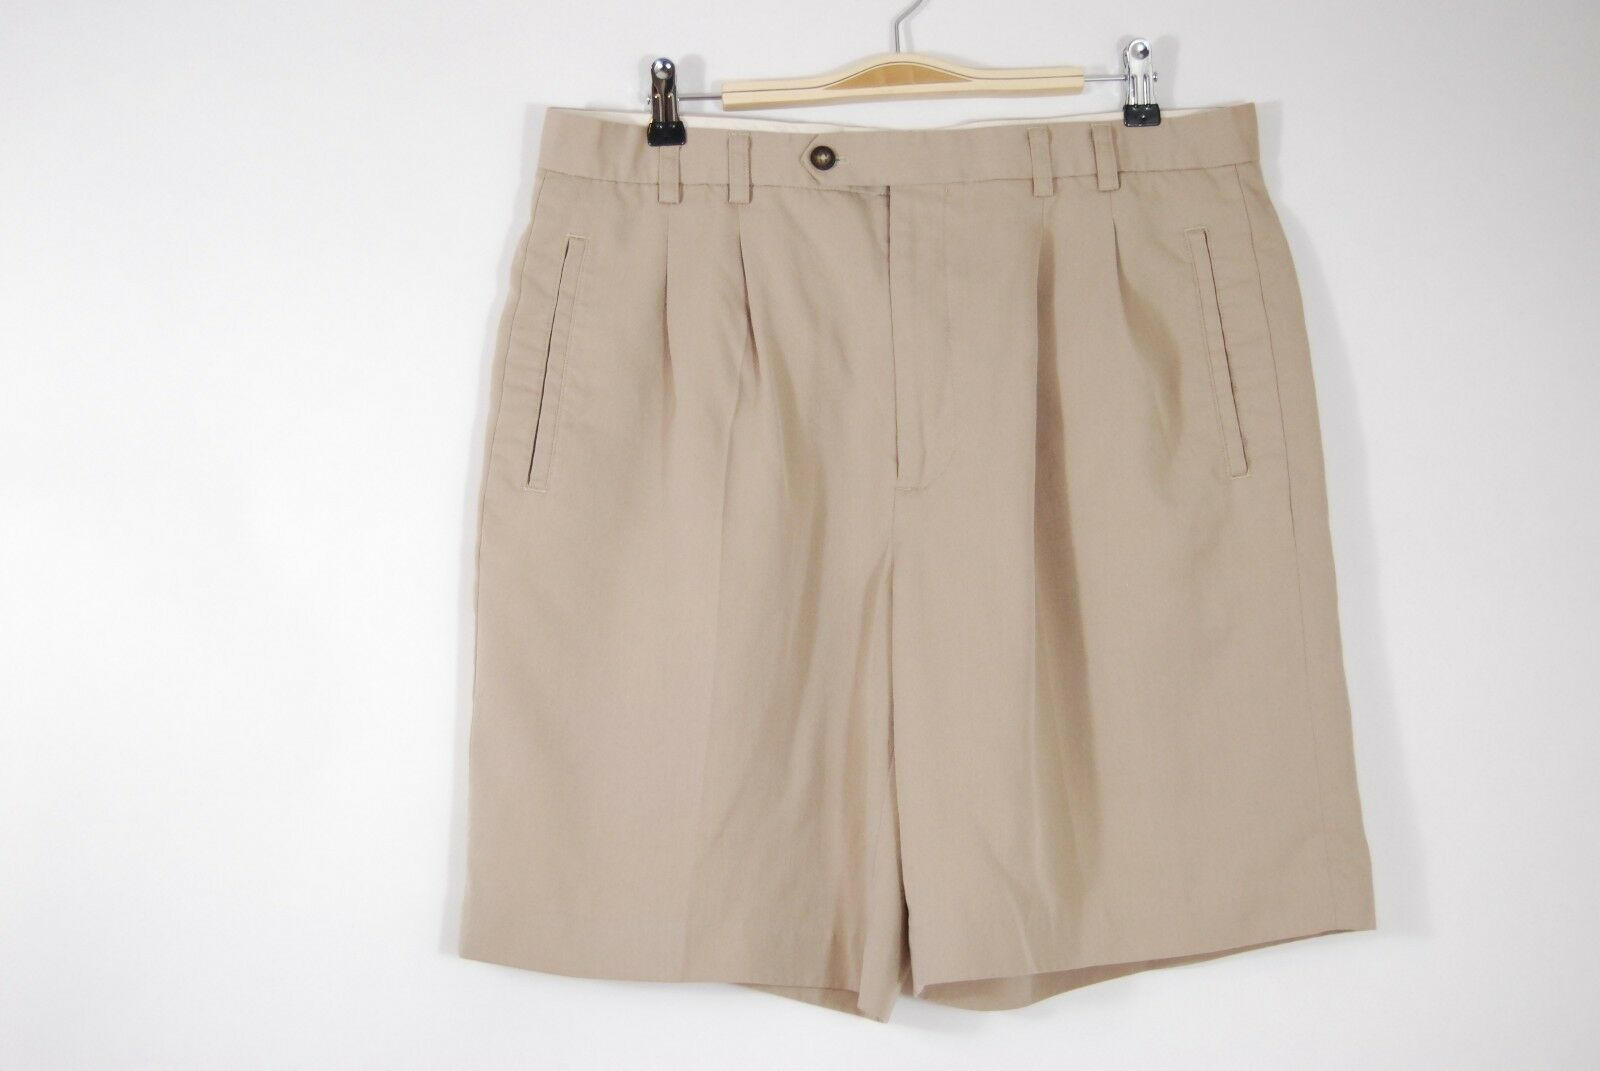 "Primary image for Cutter & Buck Mens Pleated Khaki Dress Shorts - no tag measures 35"" across waist"